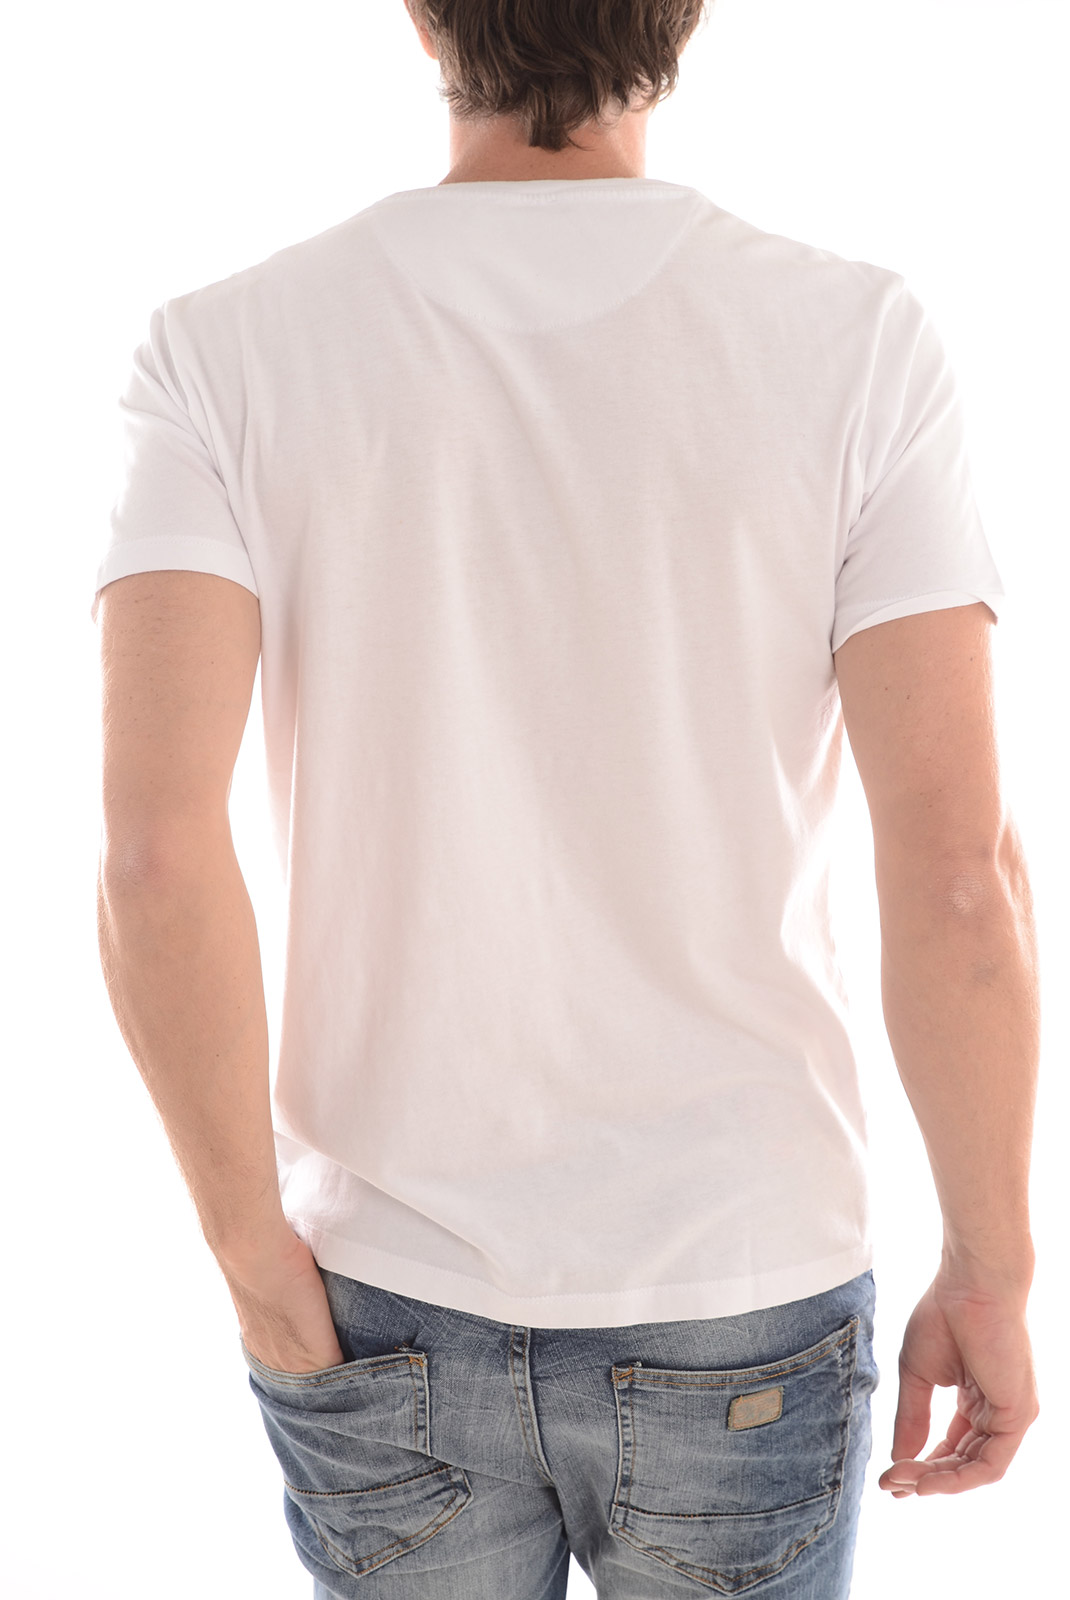 Tee-shirts  Selected SONNY SS O NECK ID BRIGHT WHITE